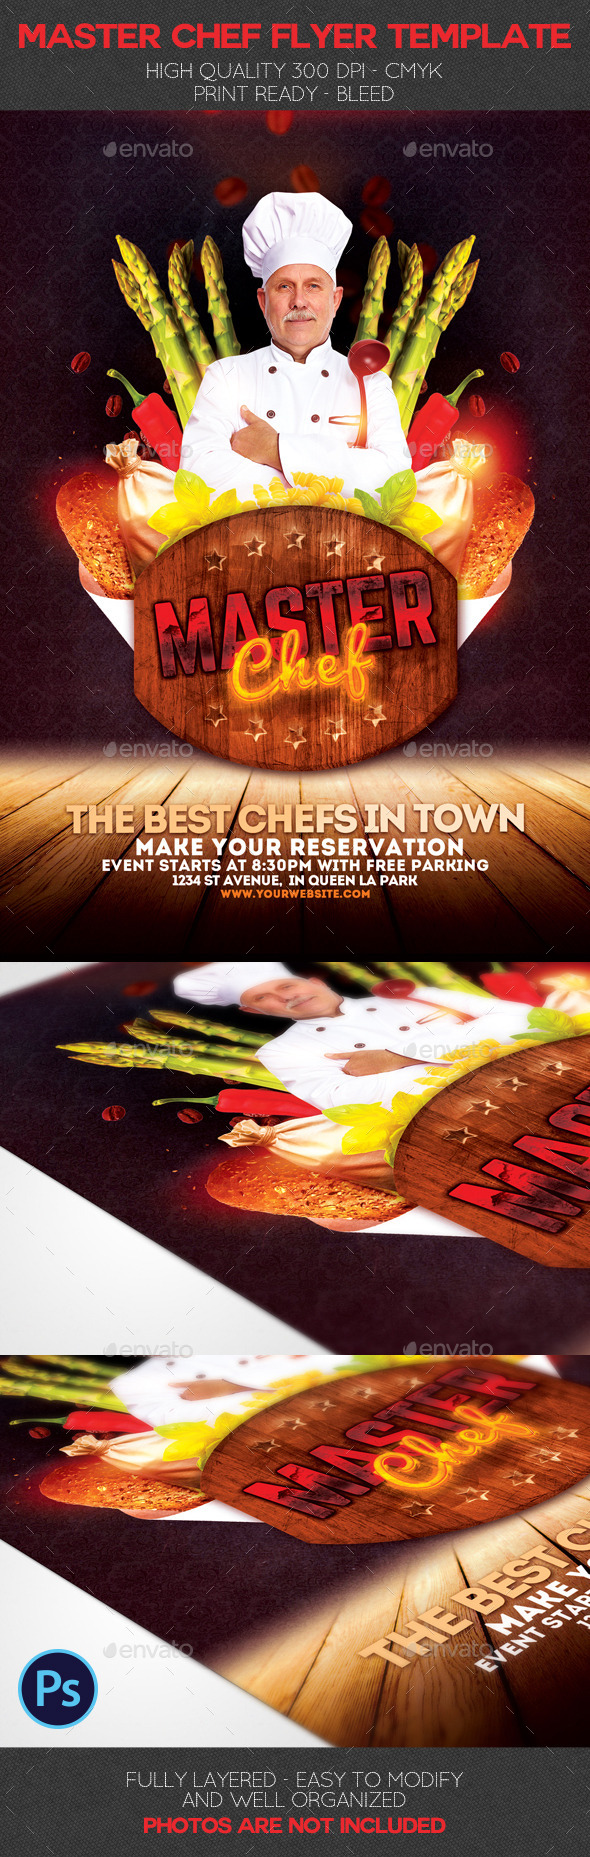 Master Chef Flyer Template - Events Flyers